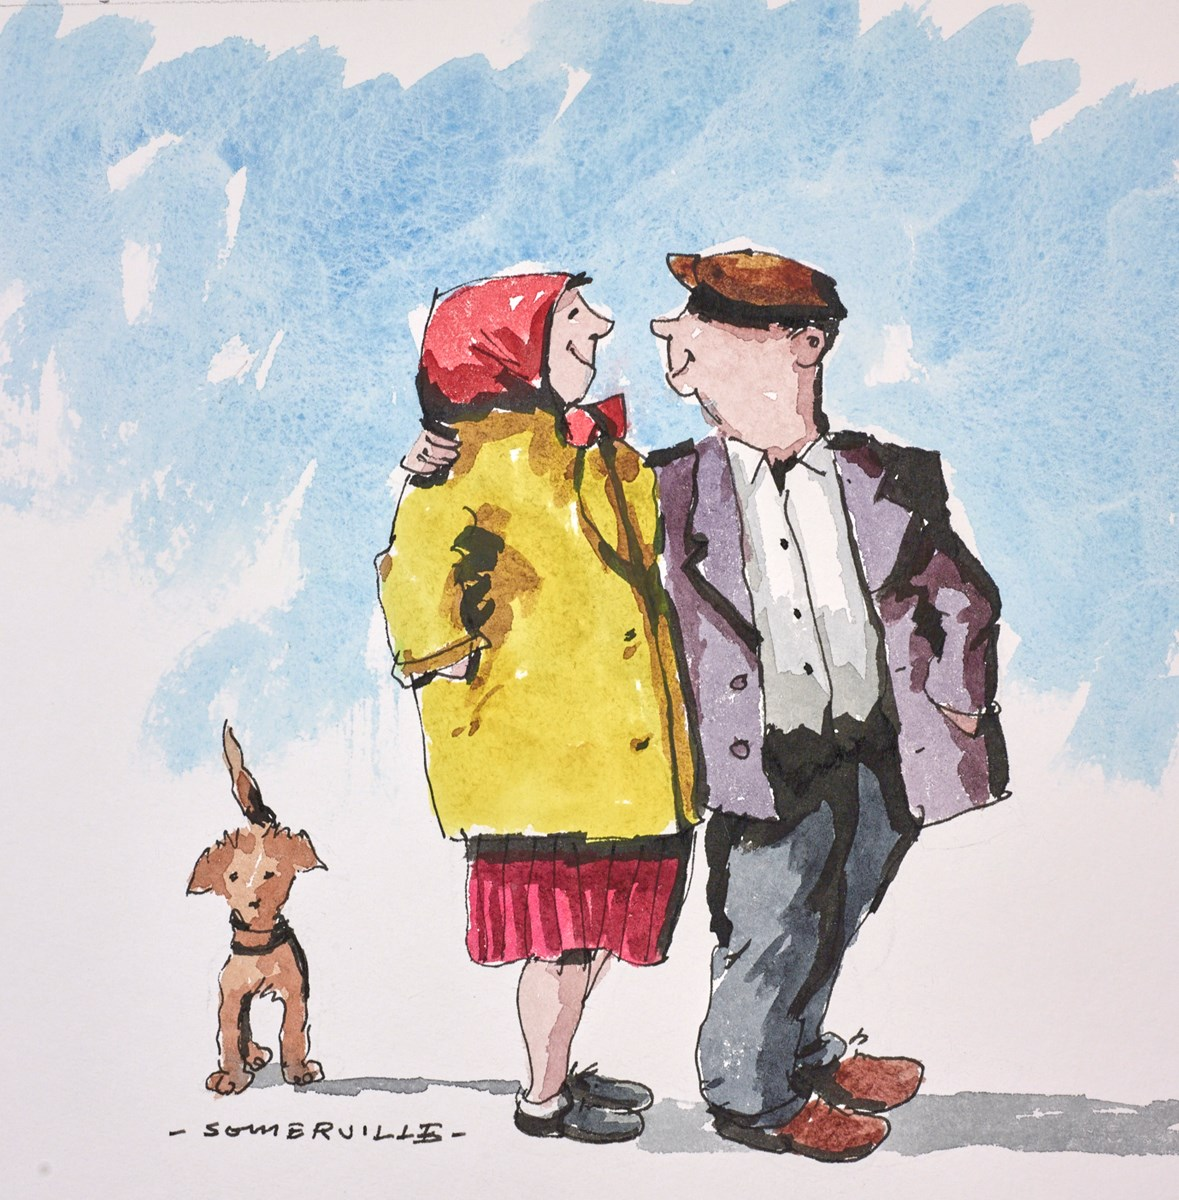 Our Life of Love III by george somerville -  sized 8x8 inches. Available from Whitewall Galleries